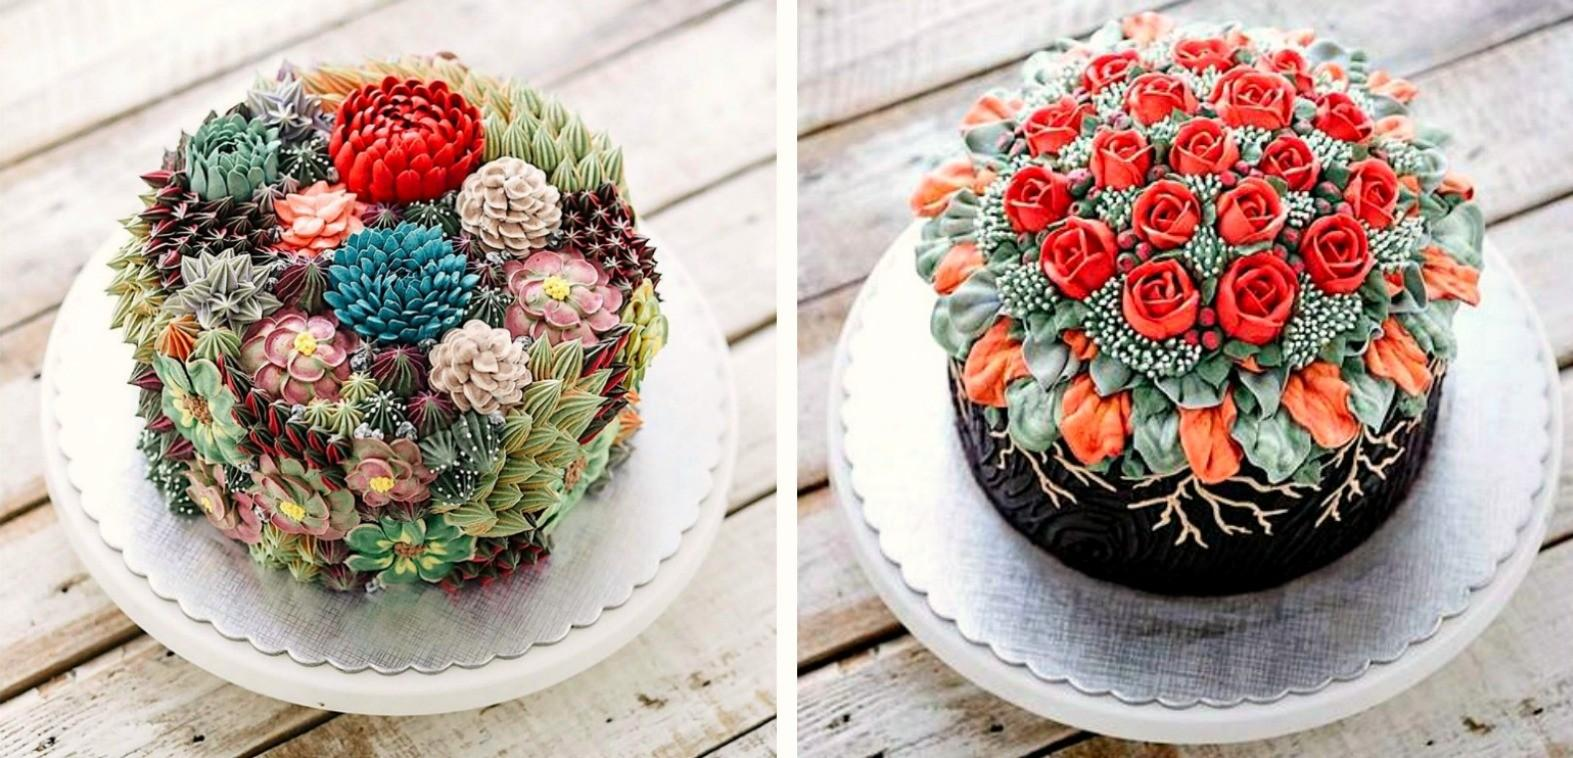 These Incredibly Lifelike Succulent Cakes Blow Your